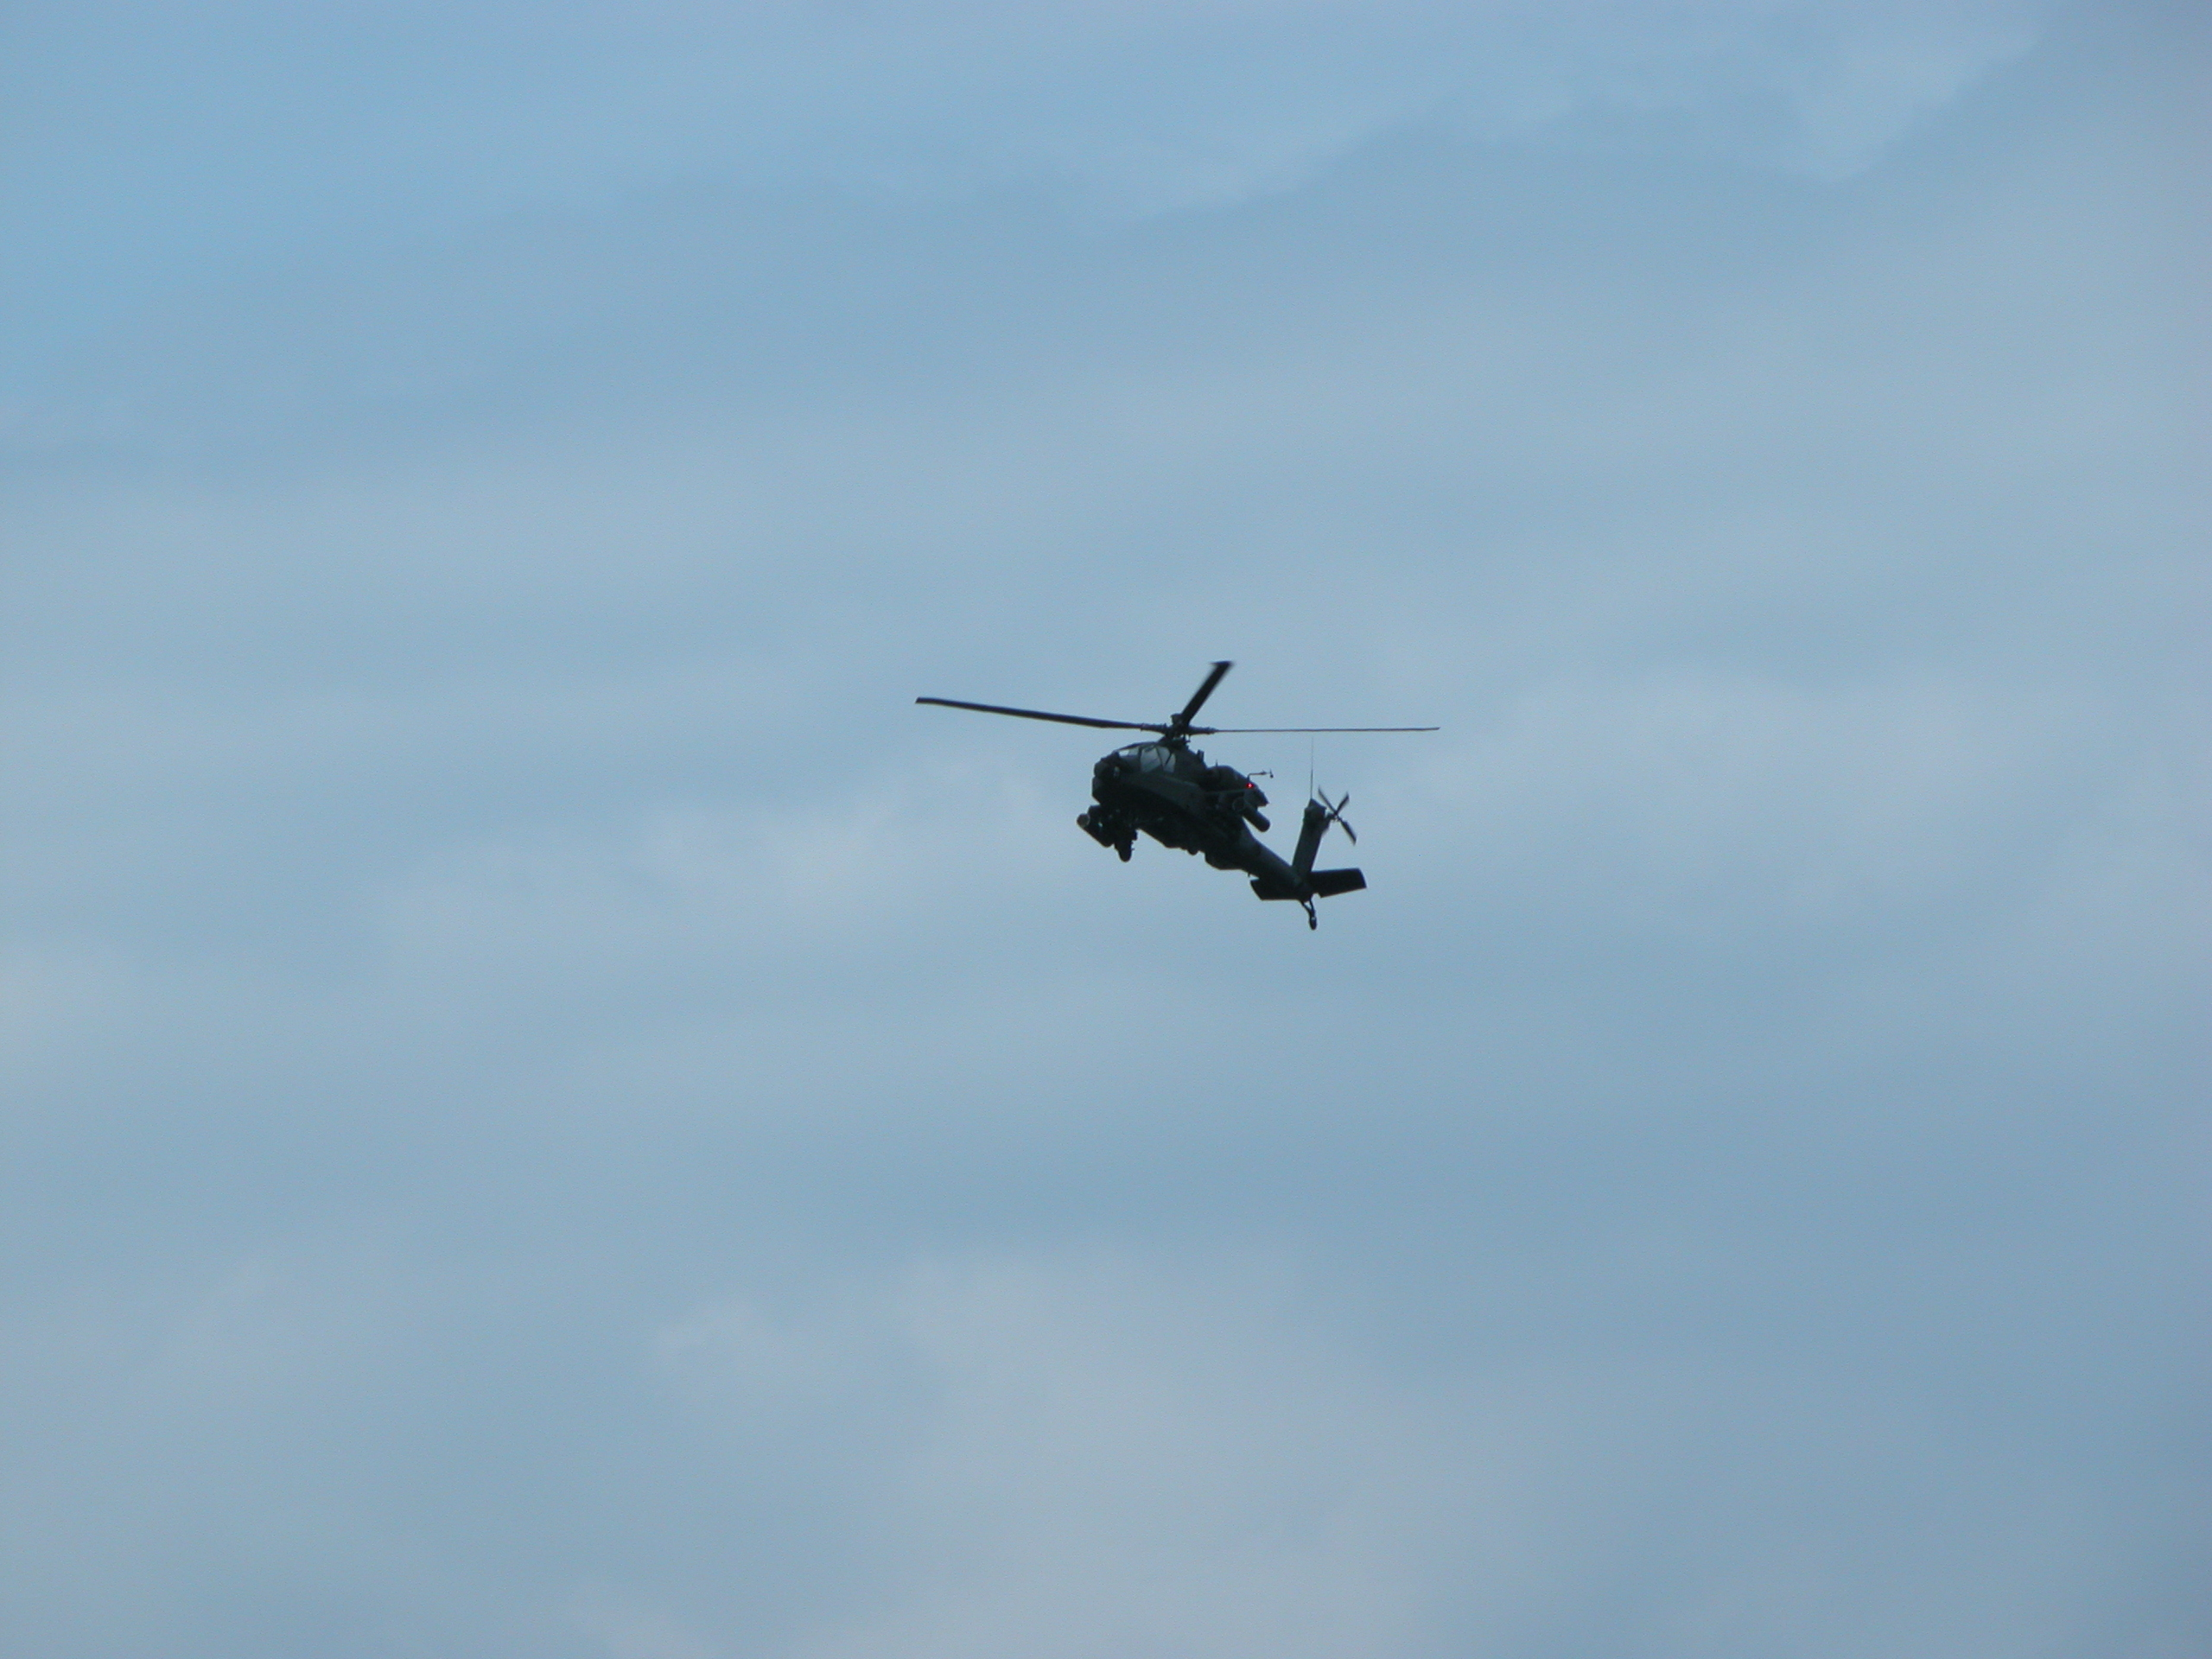 vehicles air apache chopper helicopter side flying silhouette